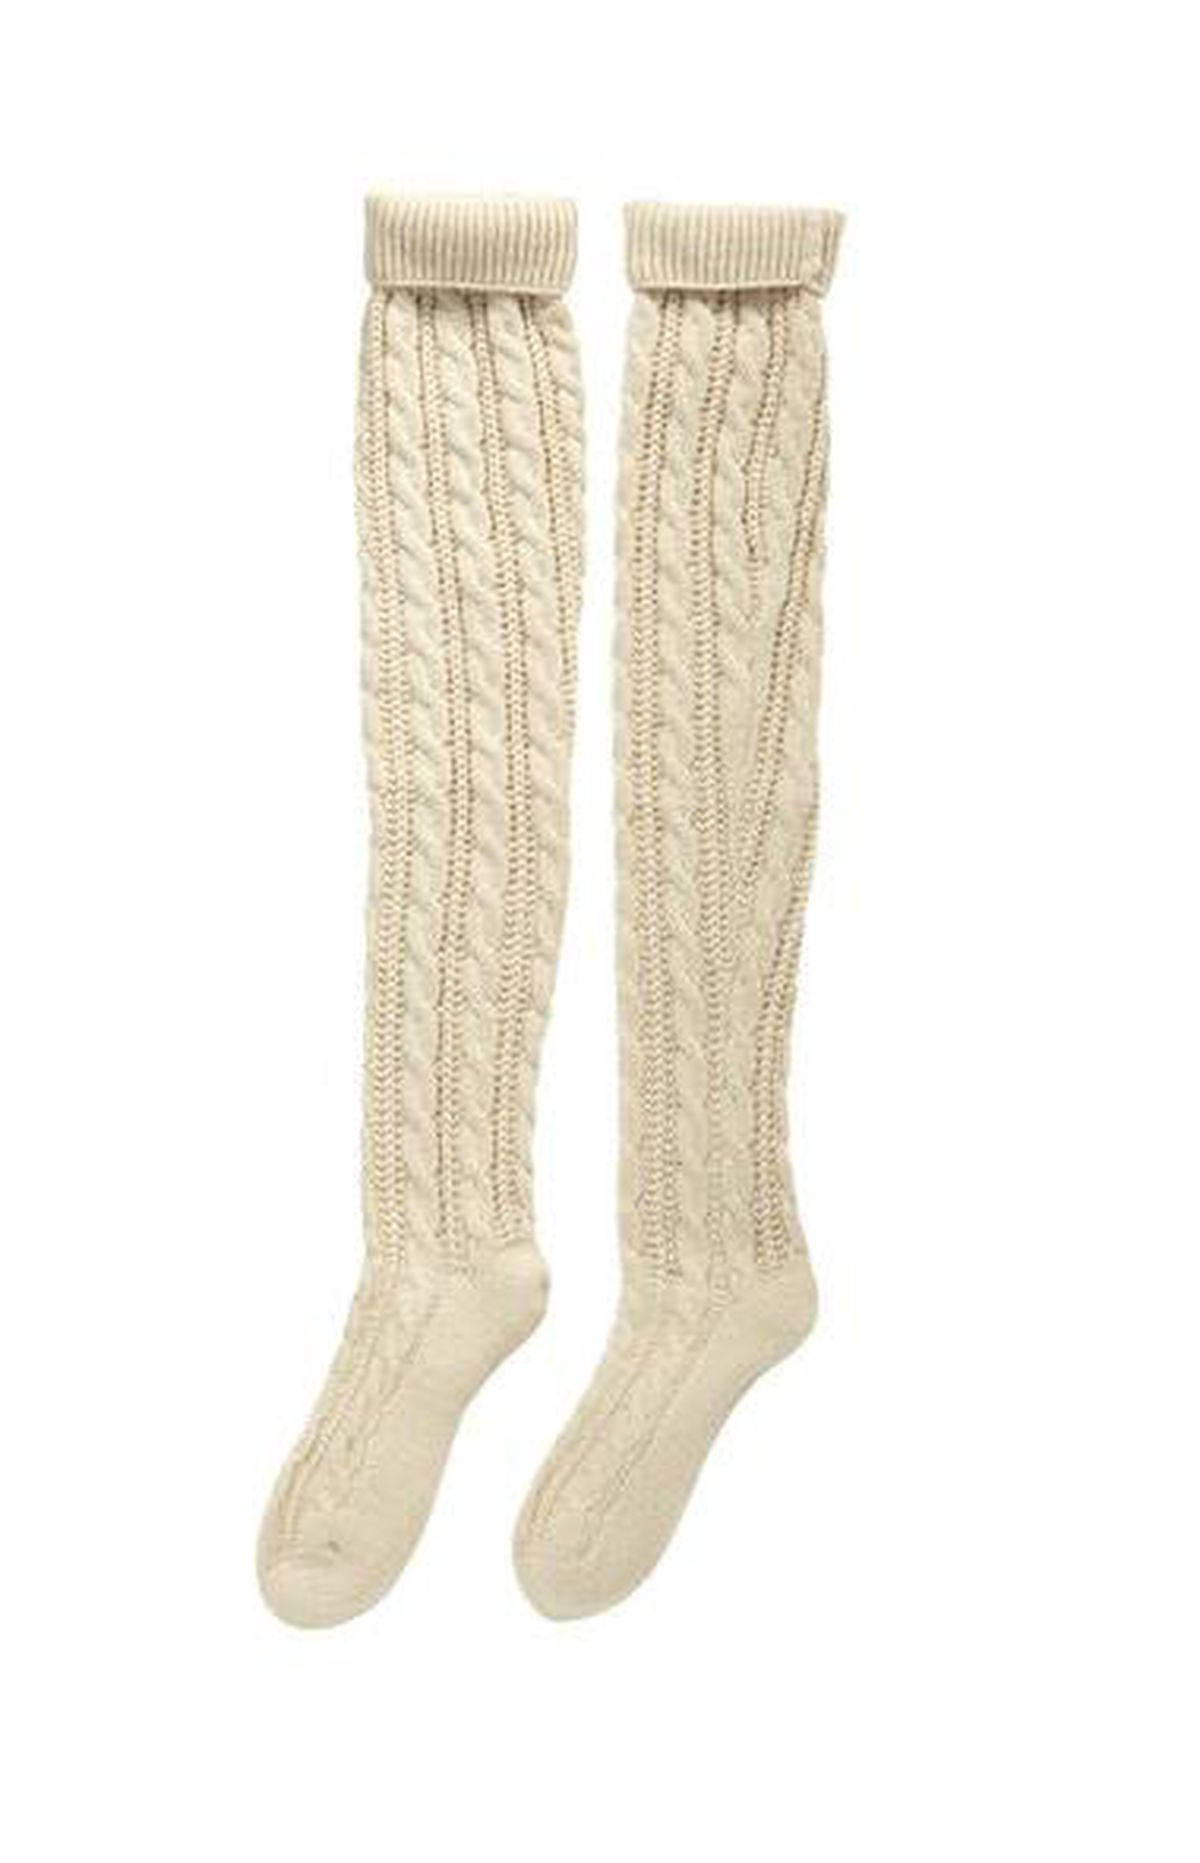 Cable-knit Hue socks in Oatmeal, $18 at Legs Beautiful